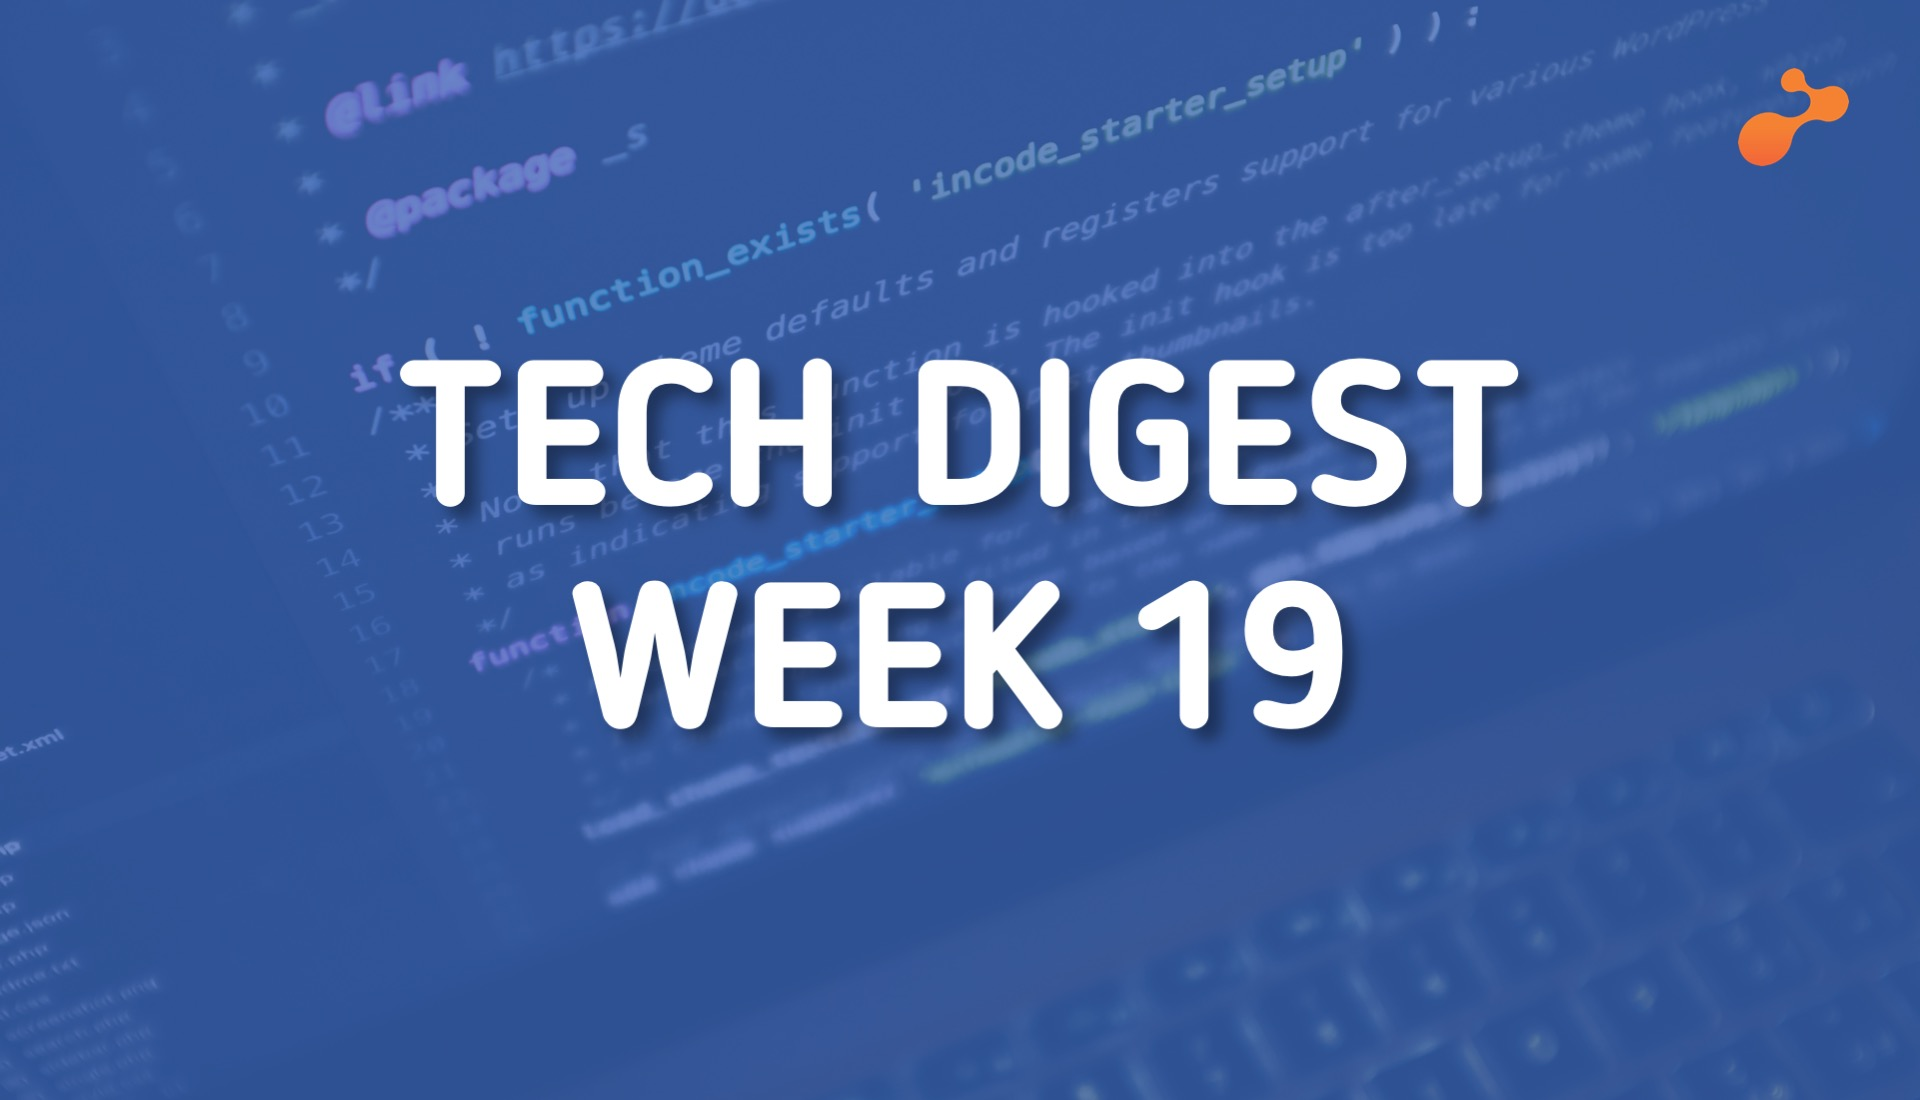 Top global technology trends to watch this week - Week 19, 2019